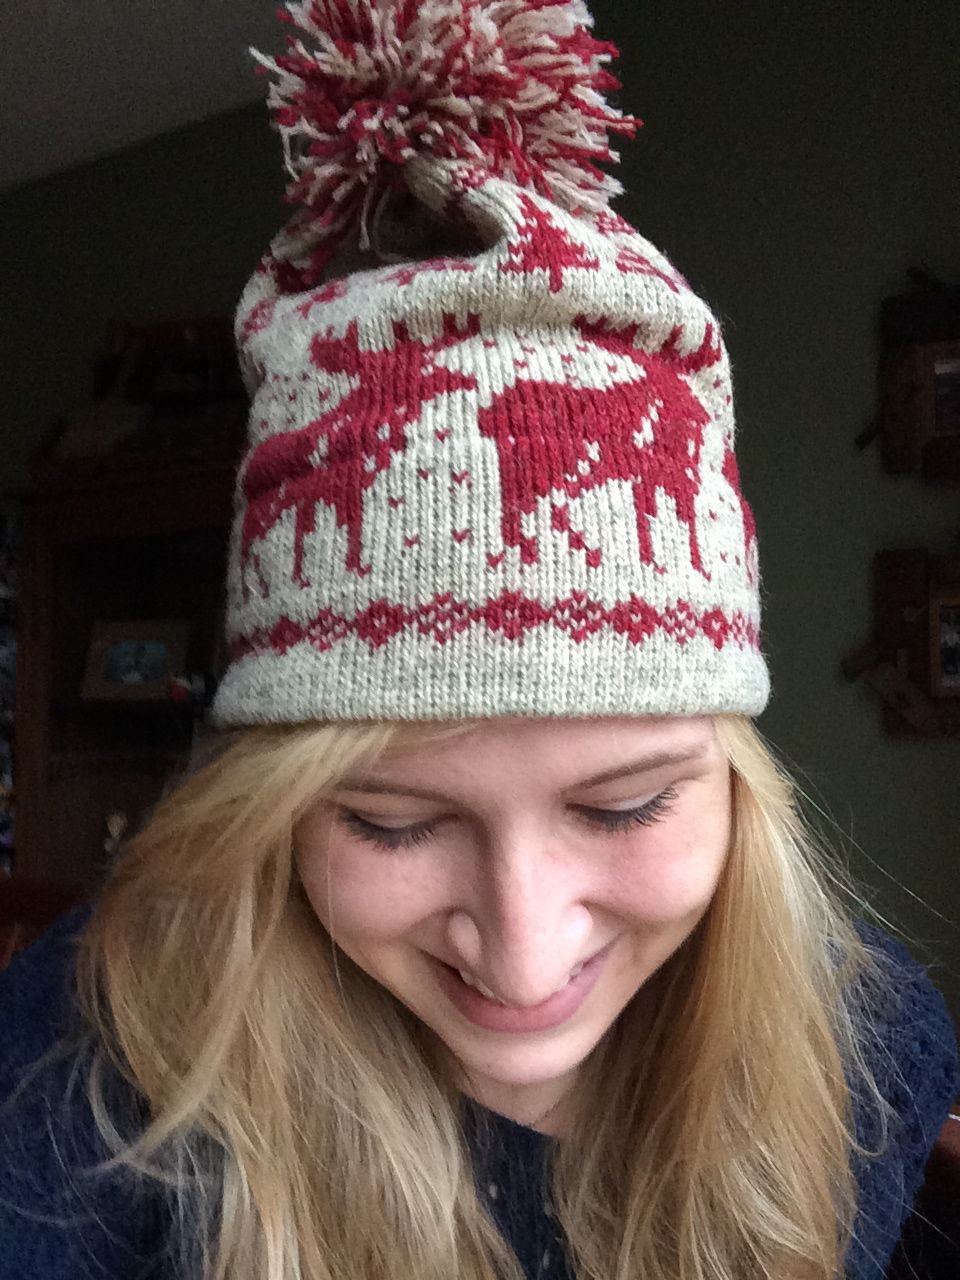 My new home alone moose hat! Knitting Sweaters 8ce5e238222